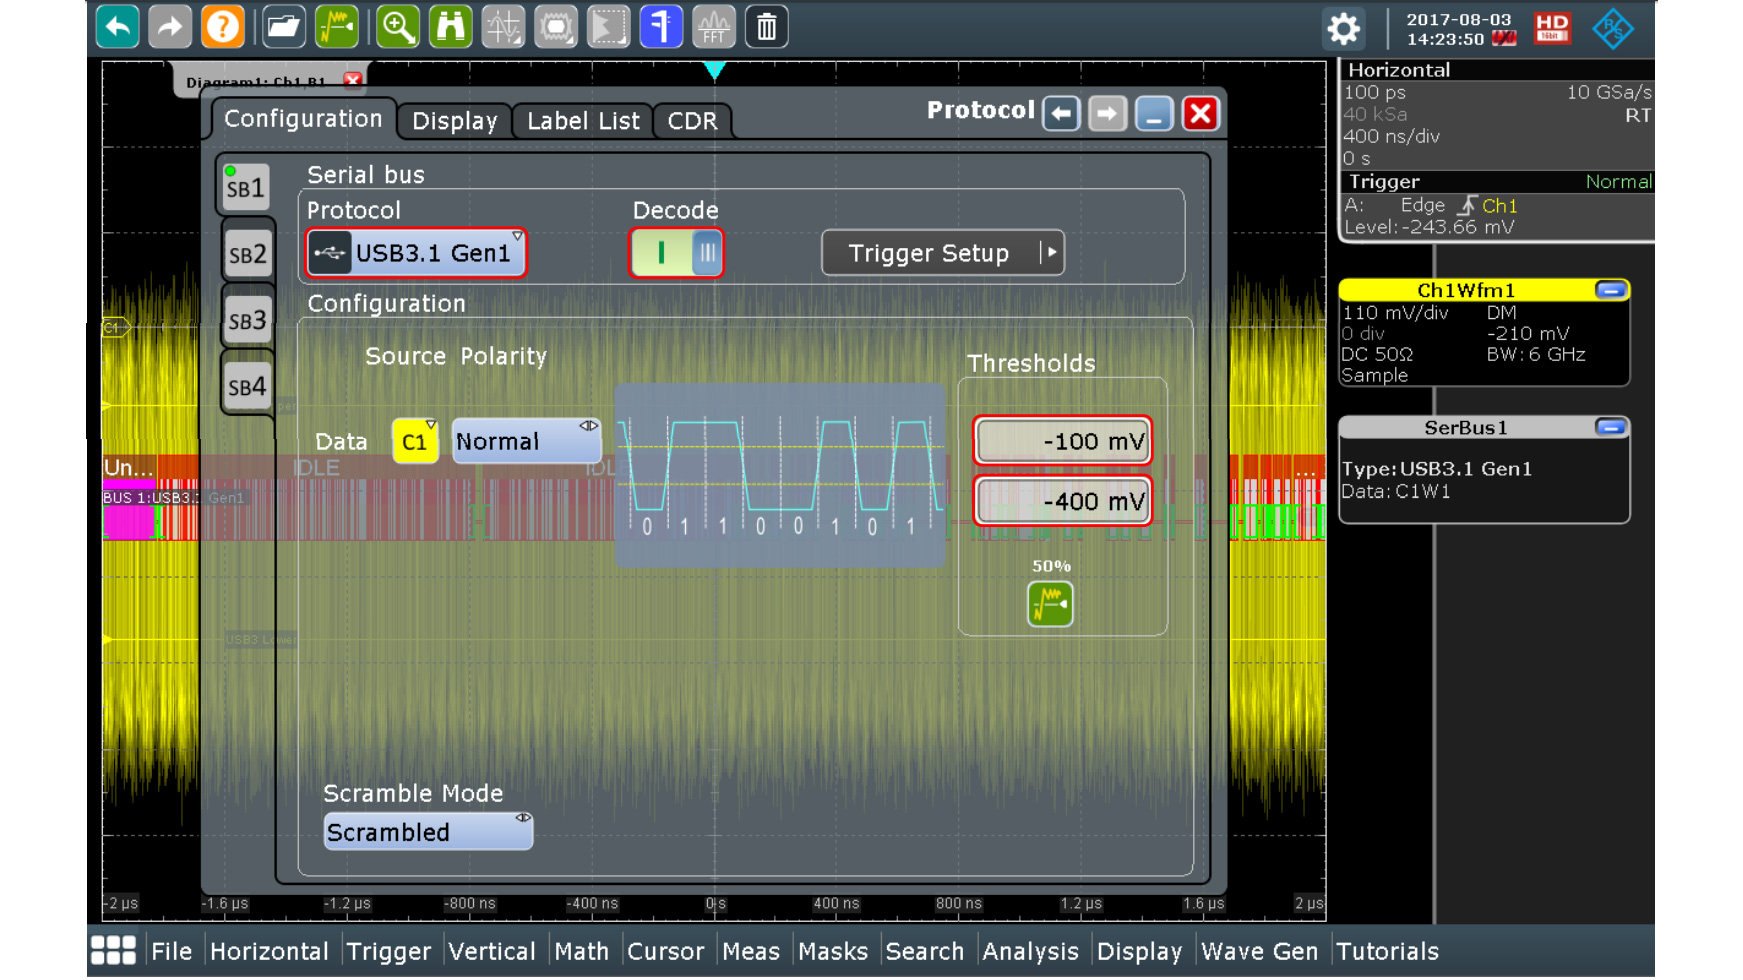 Oscilloscope - Serial Triggering and Decoding